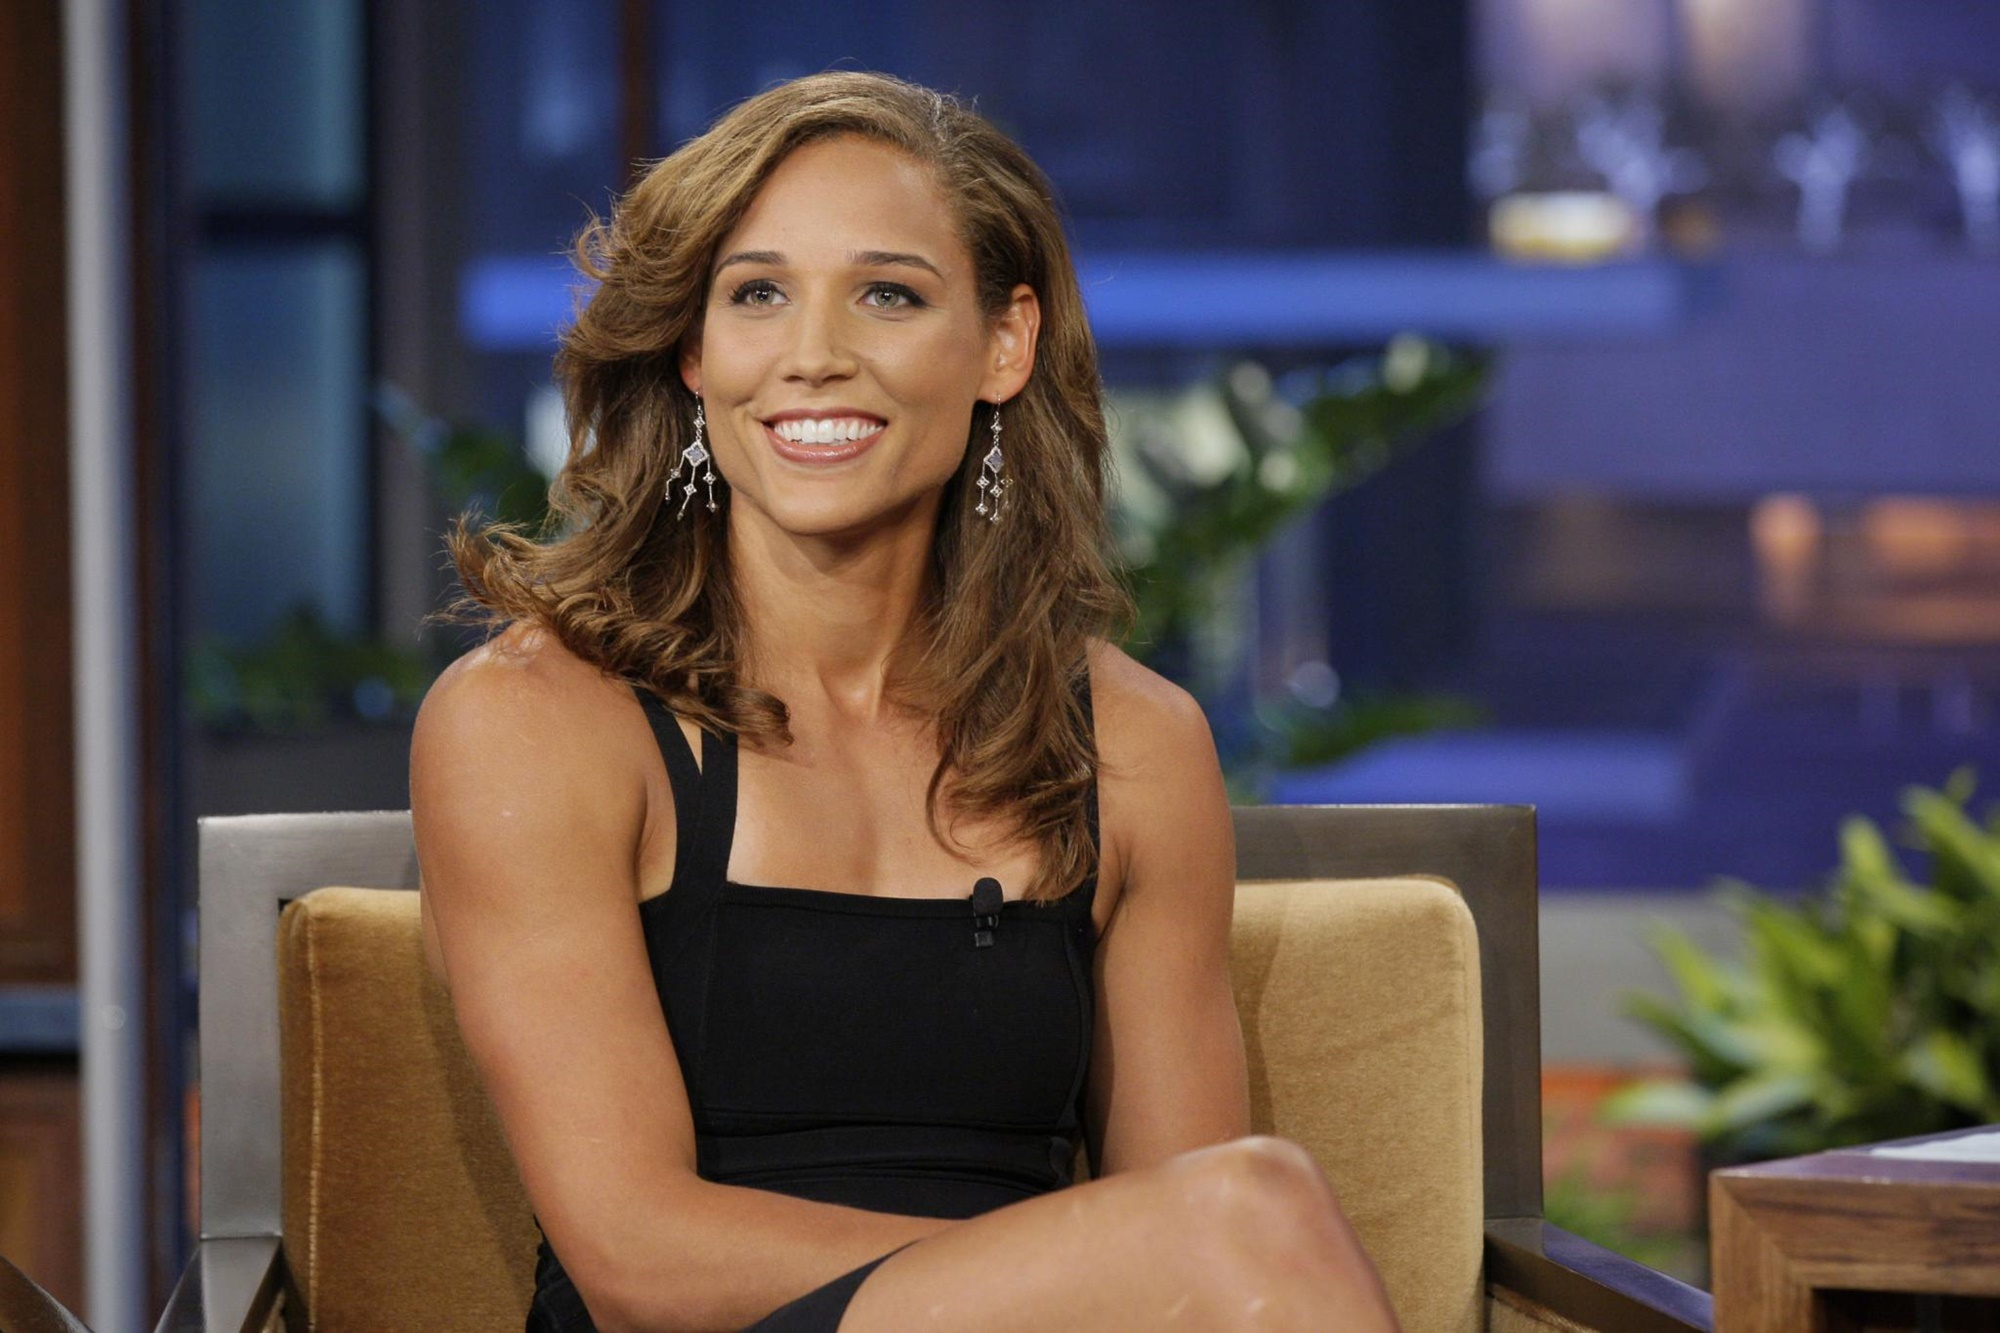 Lolo Jones Tamar Braxton Celebrity Big Brother Fight